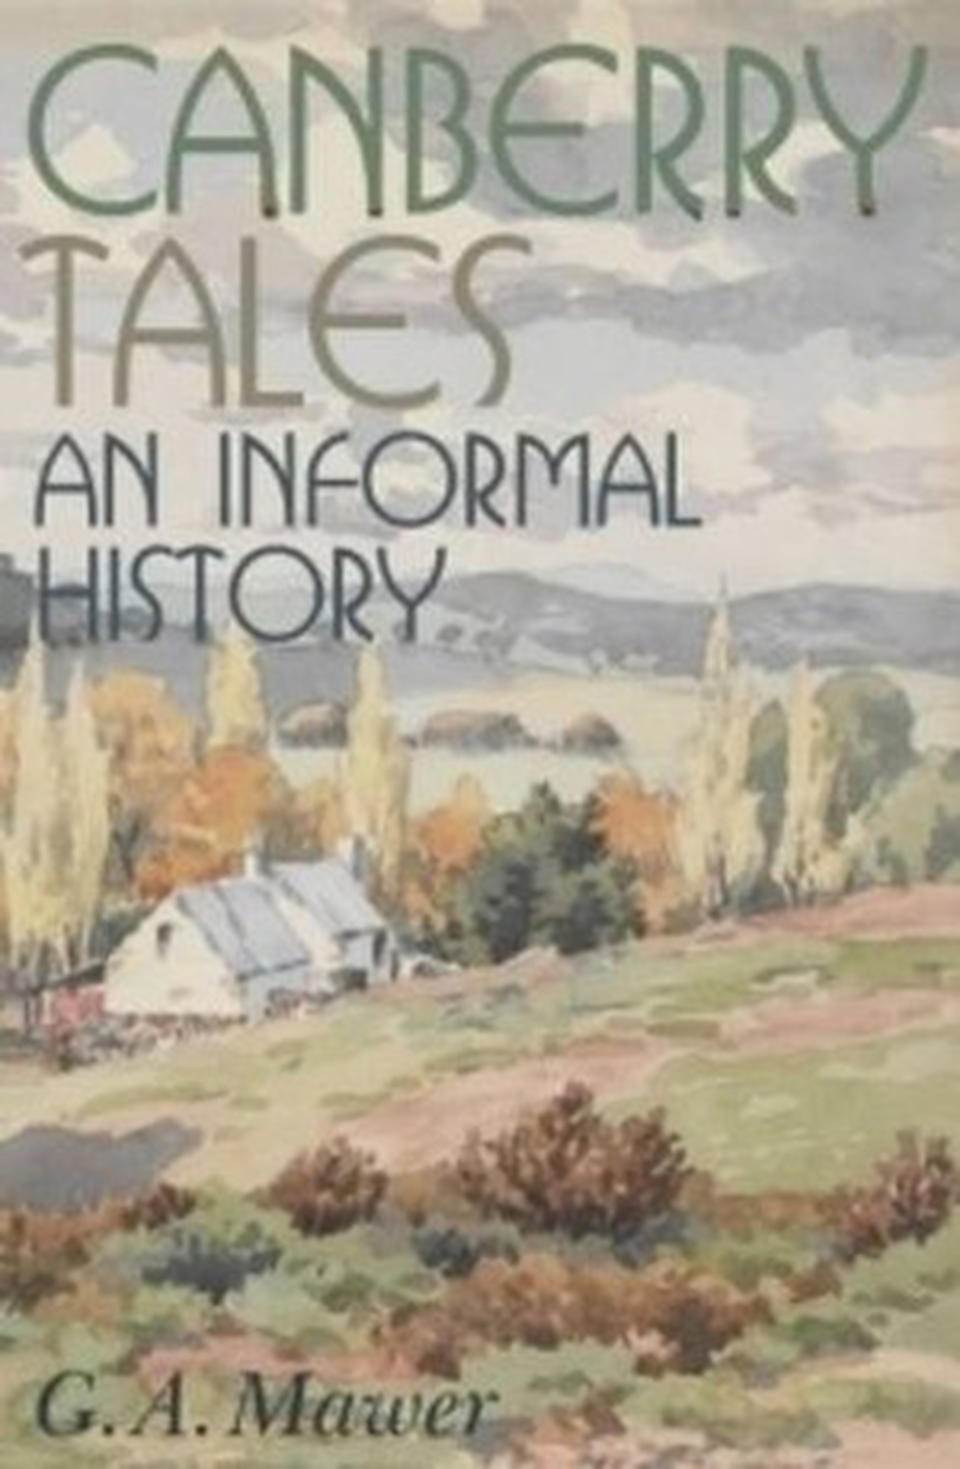 Canberry Tales: An Informal History by G.A. Mawer